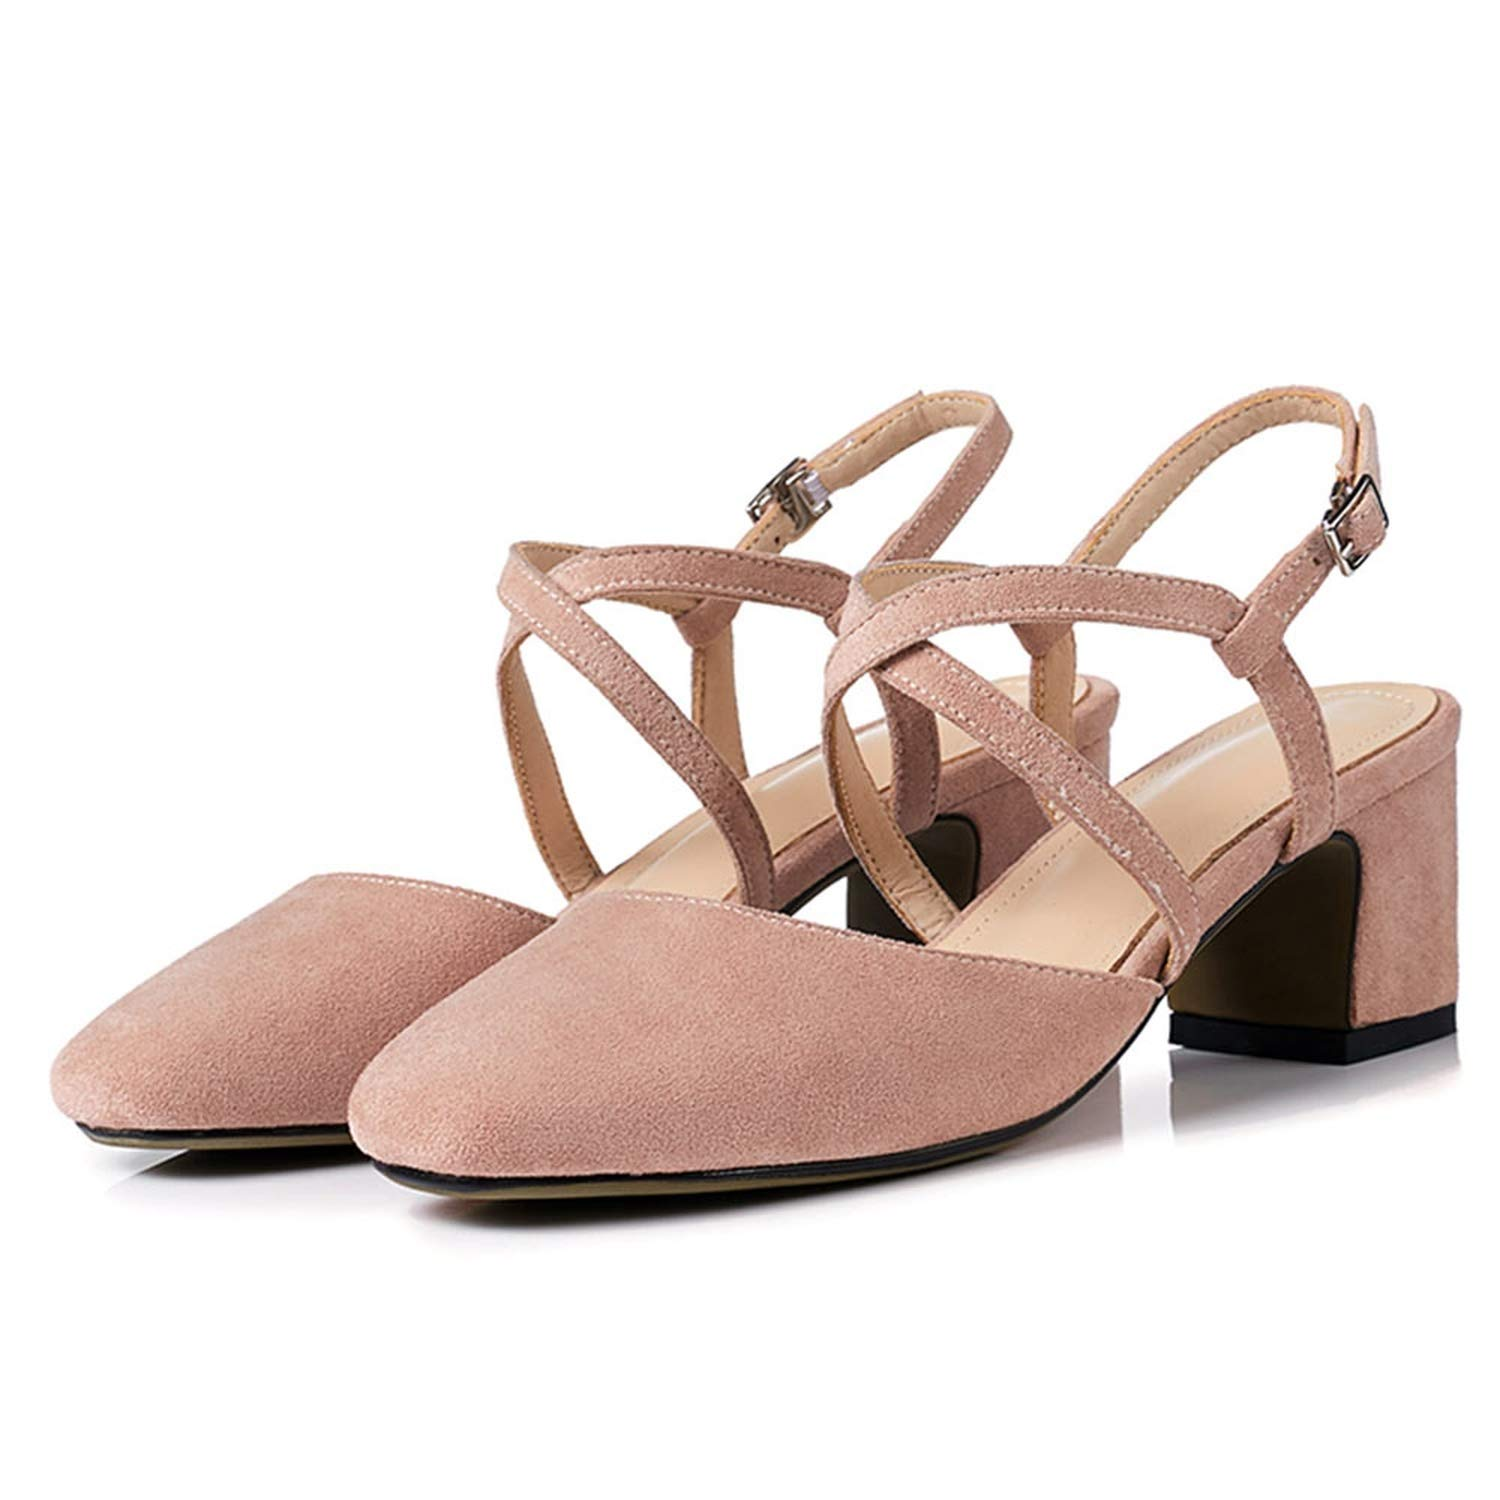 3-202 Lotus Pink shoes Cover Square Toe Sexy Slingback Summer shoes for Women Sandal